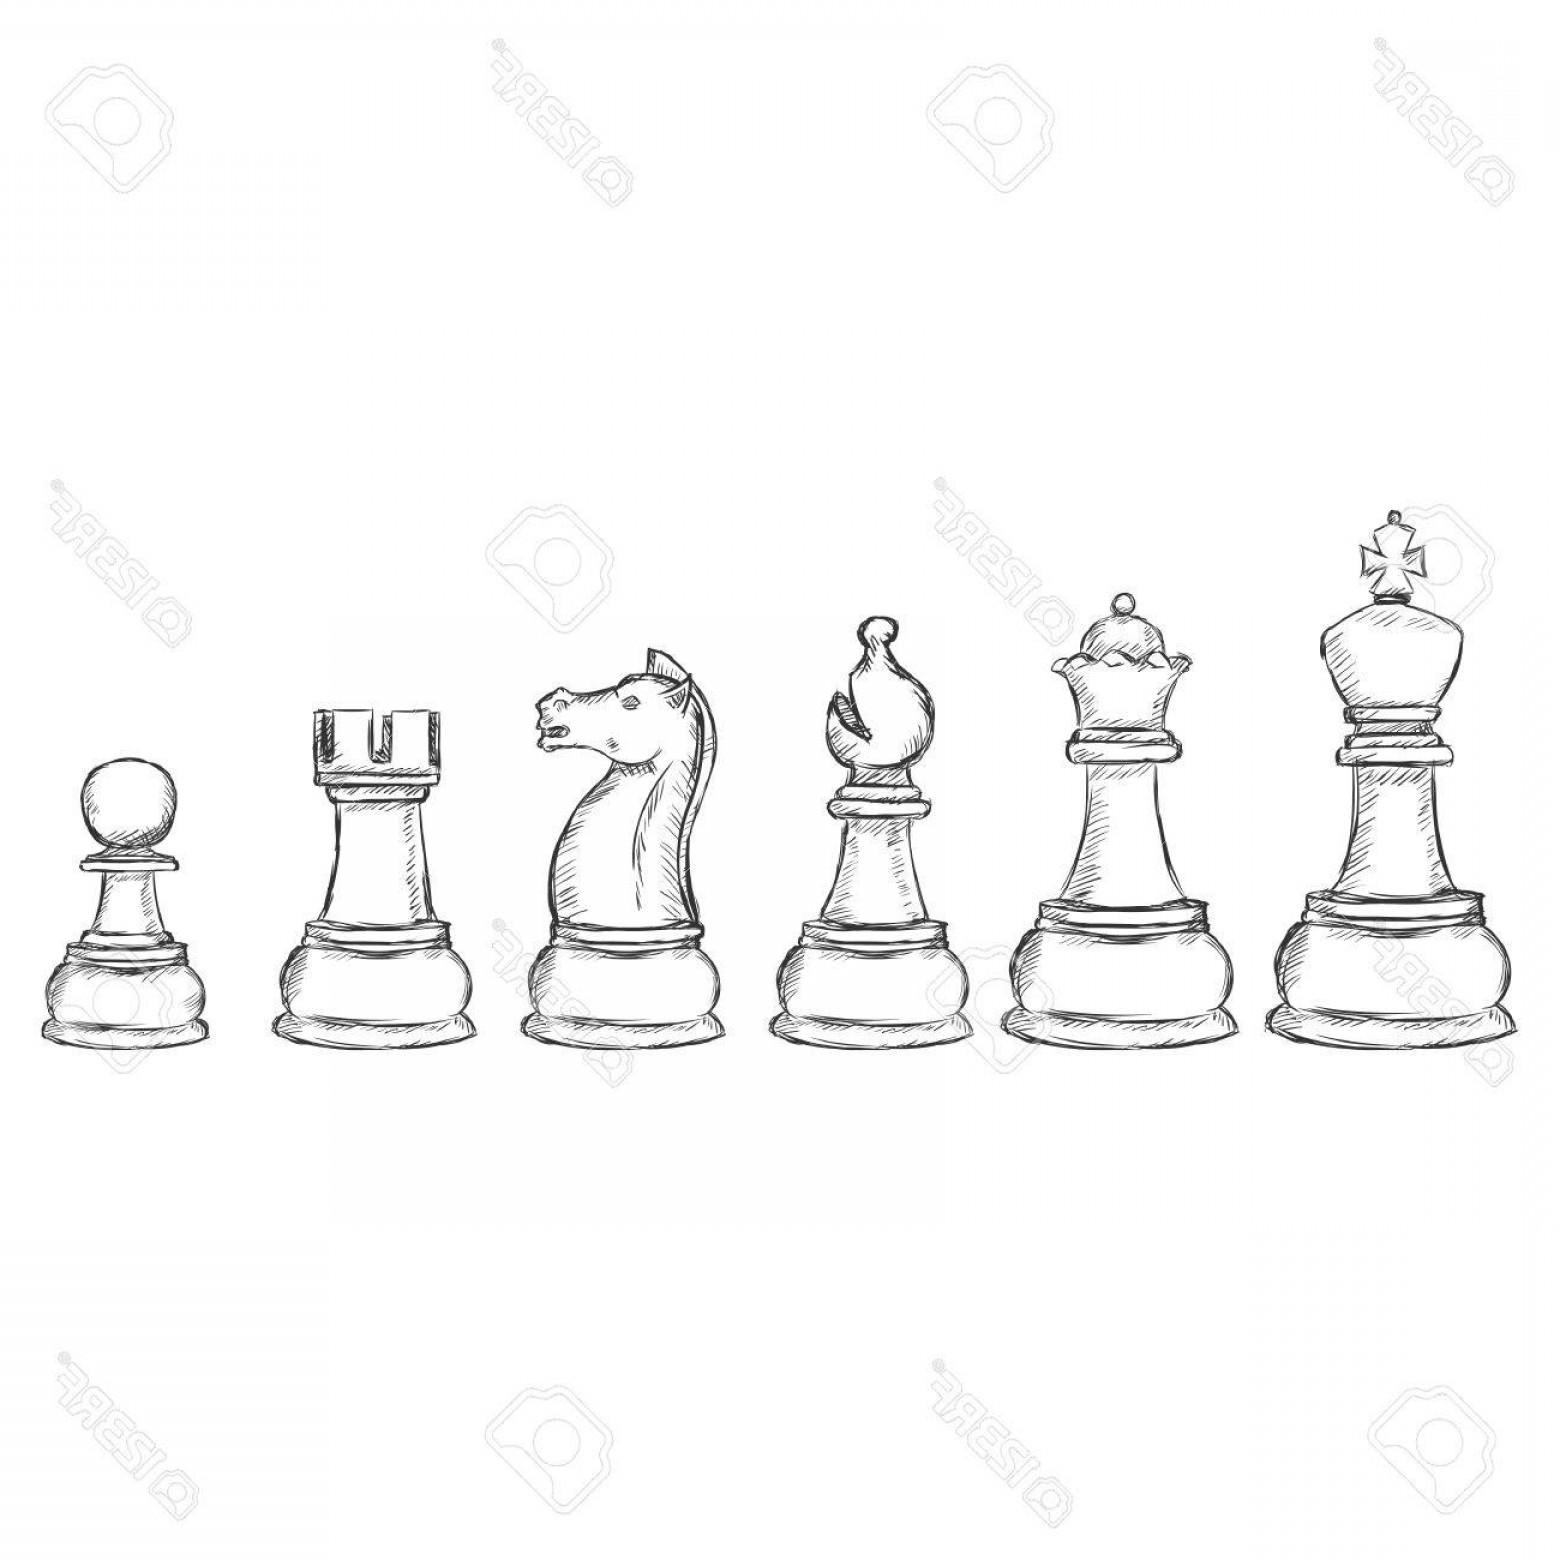 Chess Vector Background: Photostock Vector Vector Set Of Sketch Chess Figures On White Background